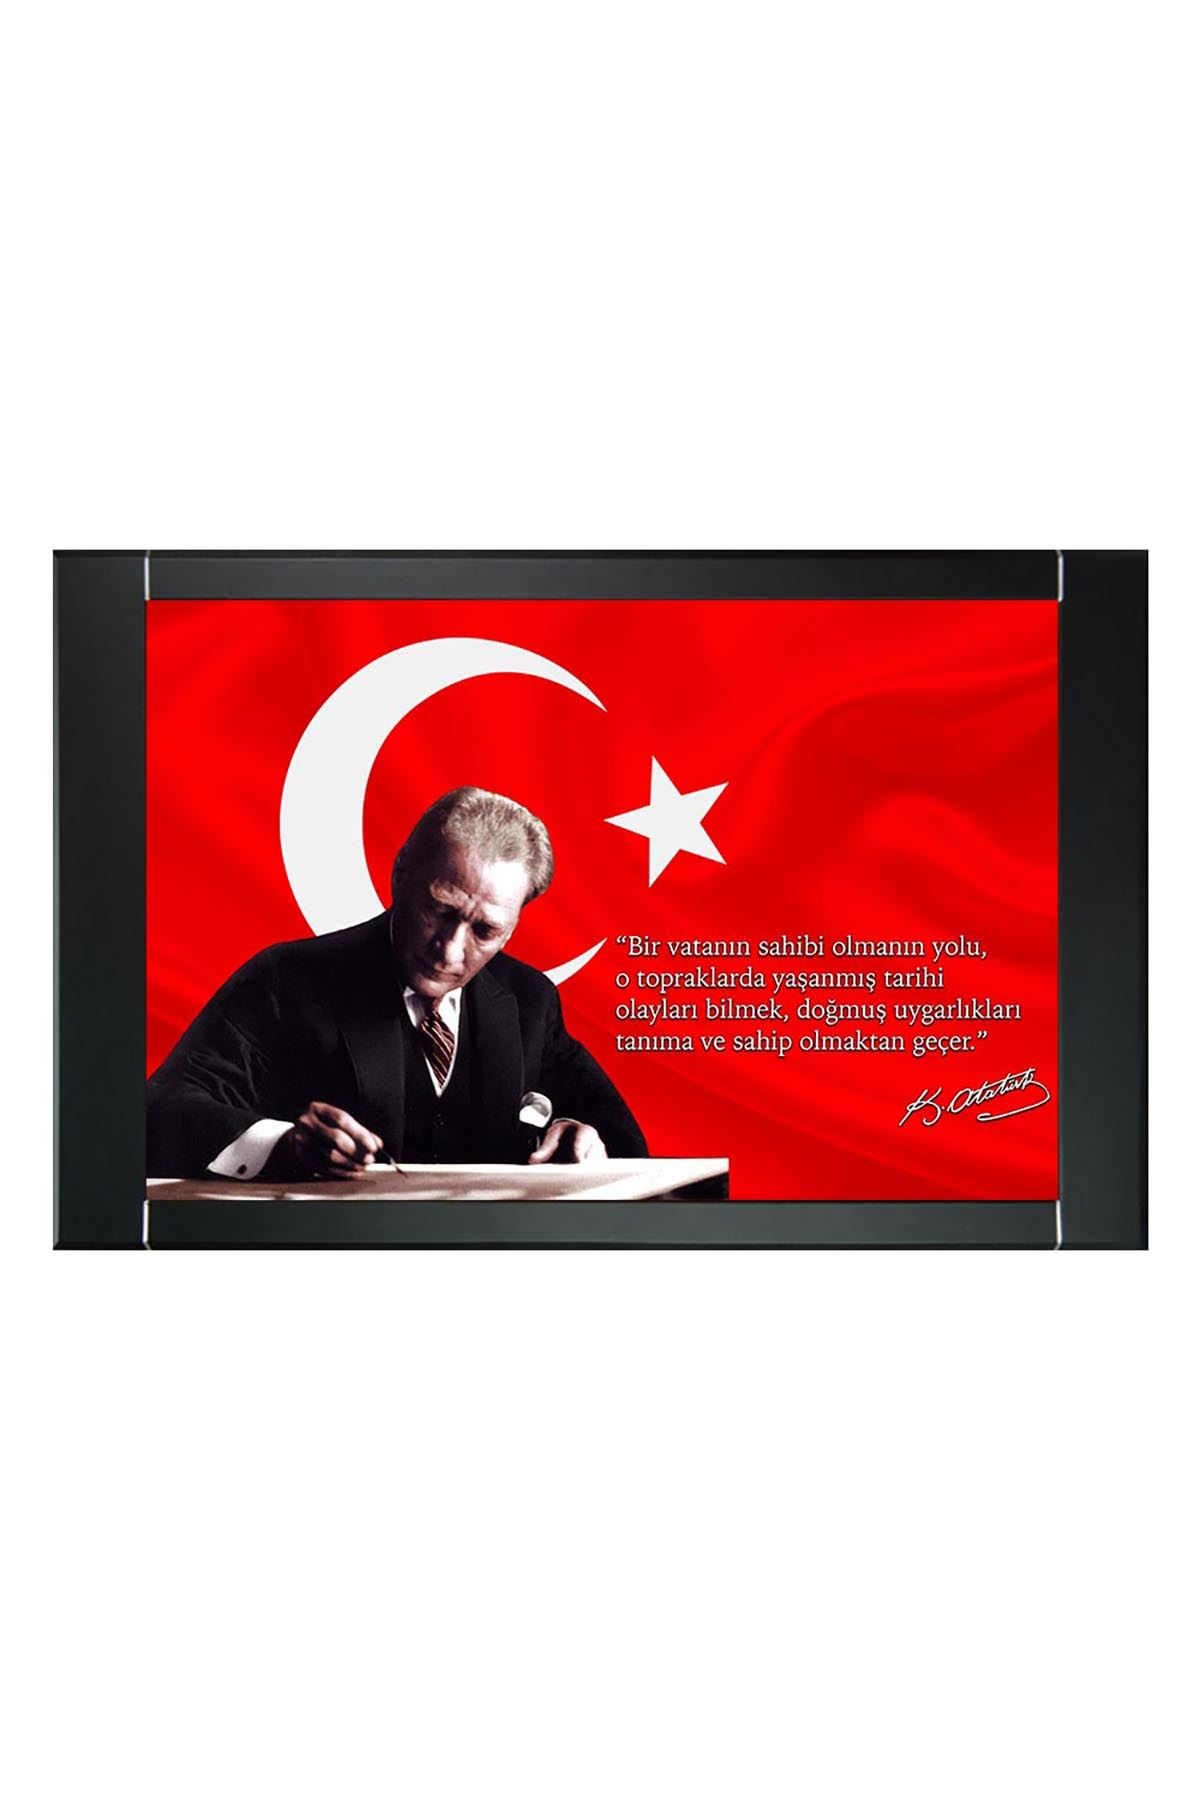 Printed Manager Board   Printed Manager Board   Leather Framed Board   High Quality Manager Board